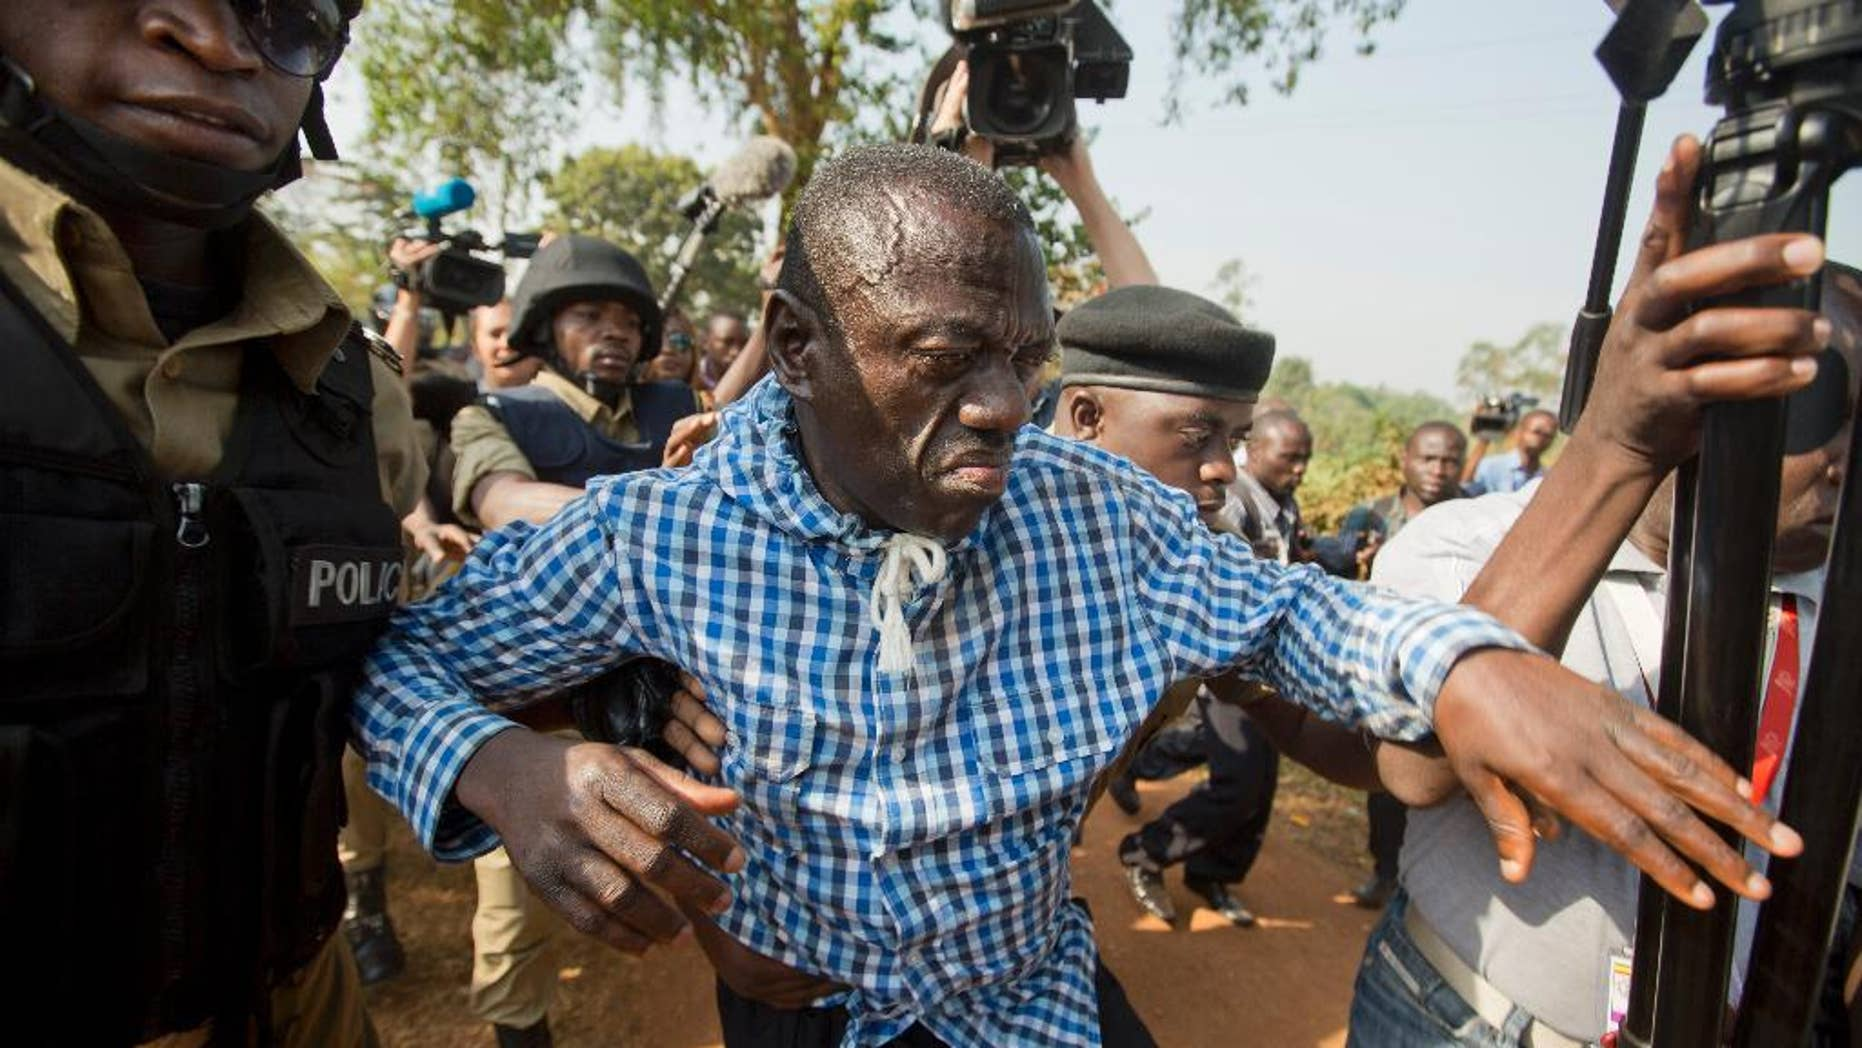 FILE - In this Monday, Feb. 22, 2016 file photo, Uganda's main opposition leader Kizza Besigye, center, is arrested by police and thrown into the back of a blacked-out police van, outside his home in Kasangati, Uganda. A spokesman for Uganda's judiciary said Saturday, May 14, 2016 that the main opposition leader Kizza Besigye has been flown to Moroto in the remote northeast of the country and charged with treason, a charge which attracts a maximum penalty of death upon conviction. (AP Photo/Ben Curtis, File)